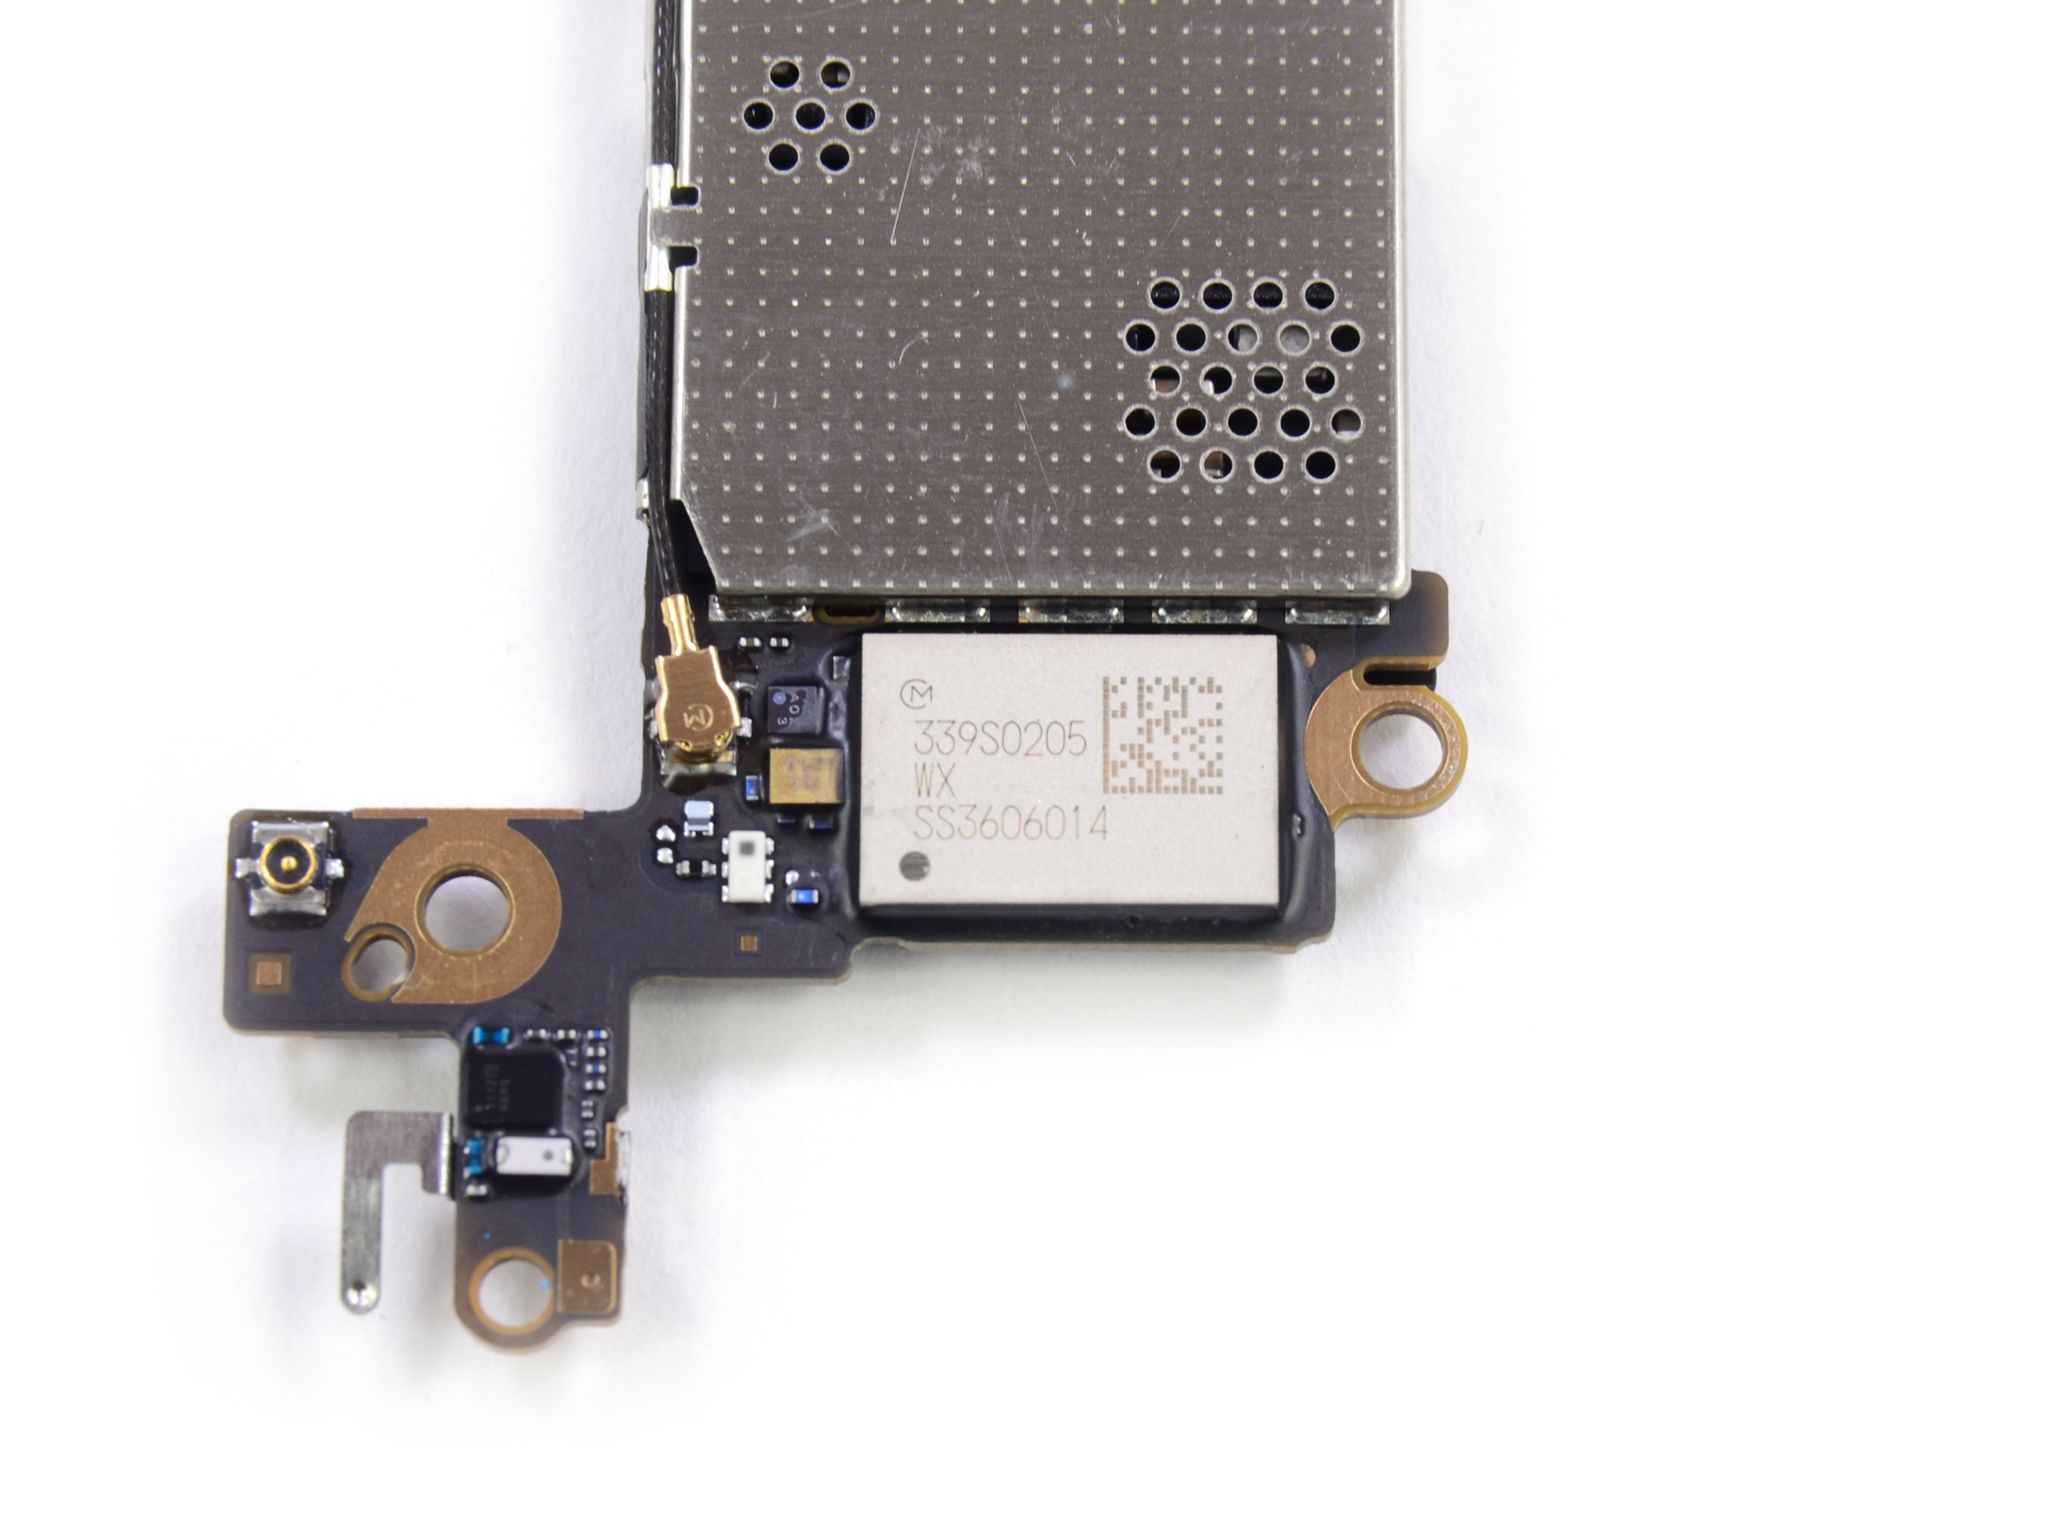 iPhone 5s teardown (iFixit, Murata 339S0205 Wi-Fi module)